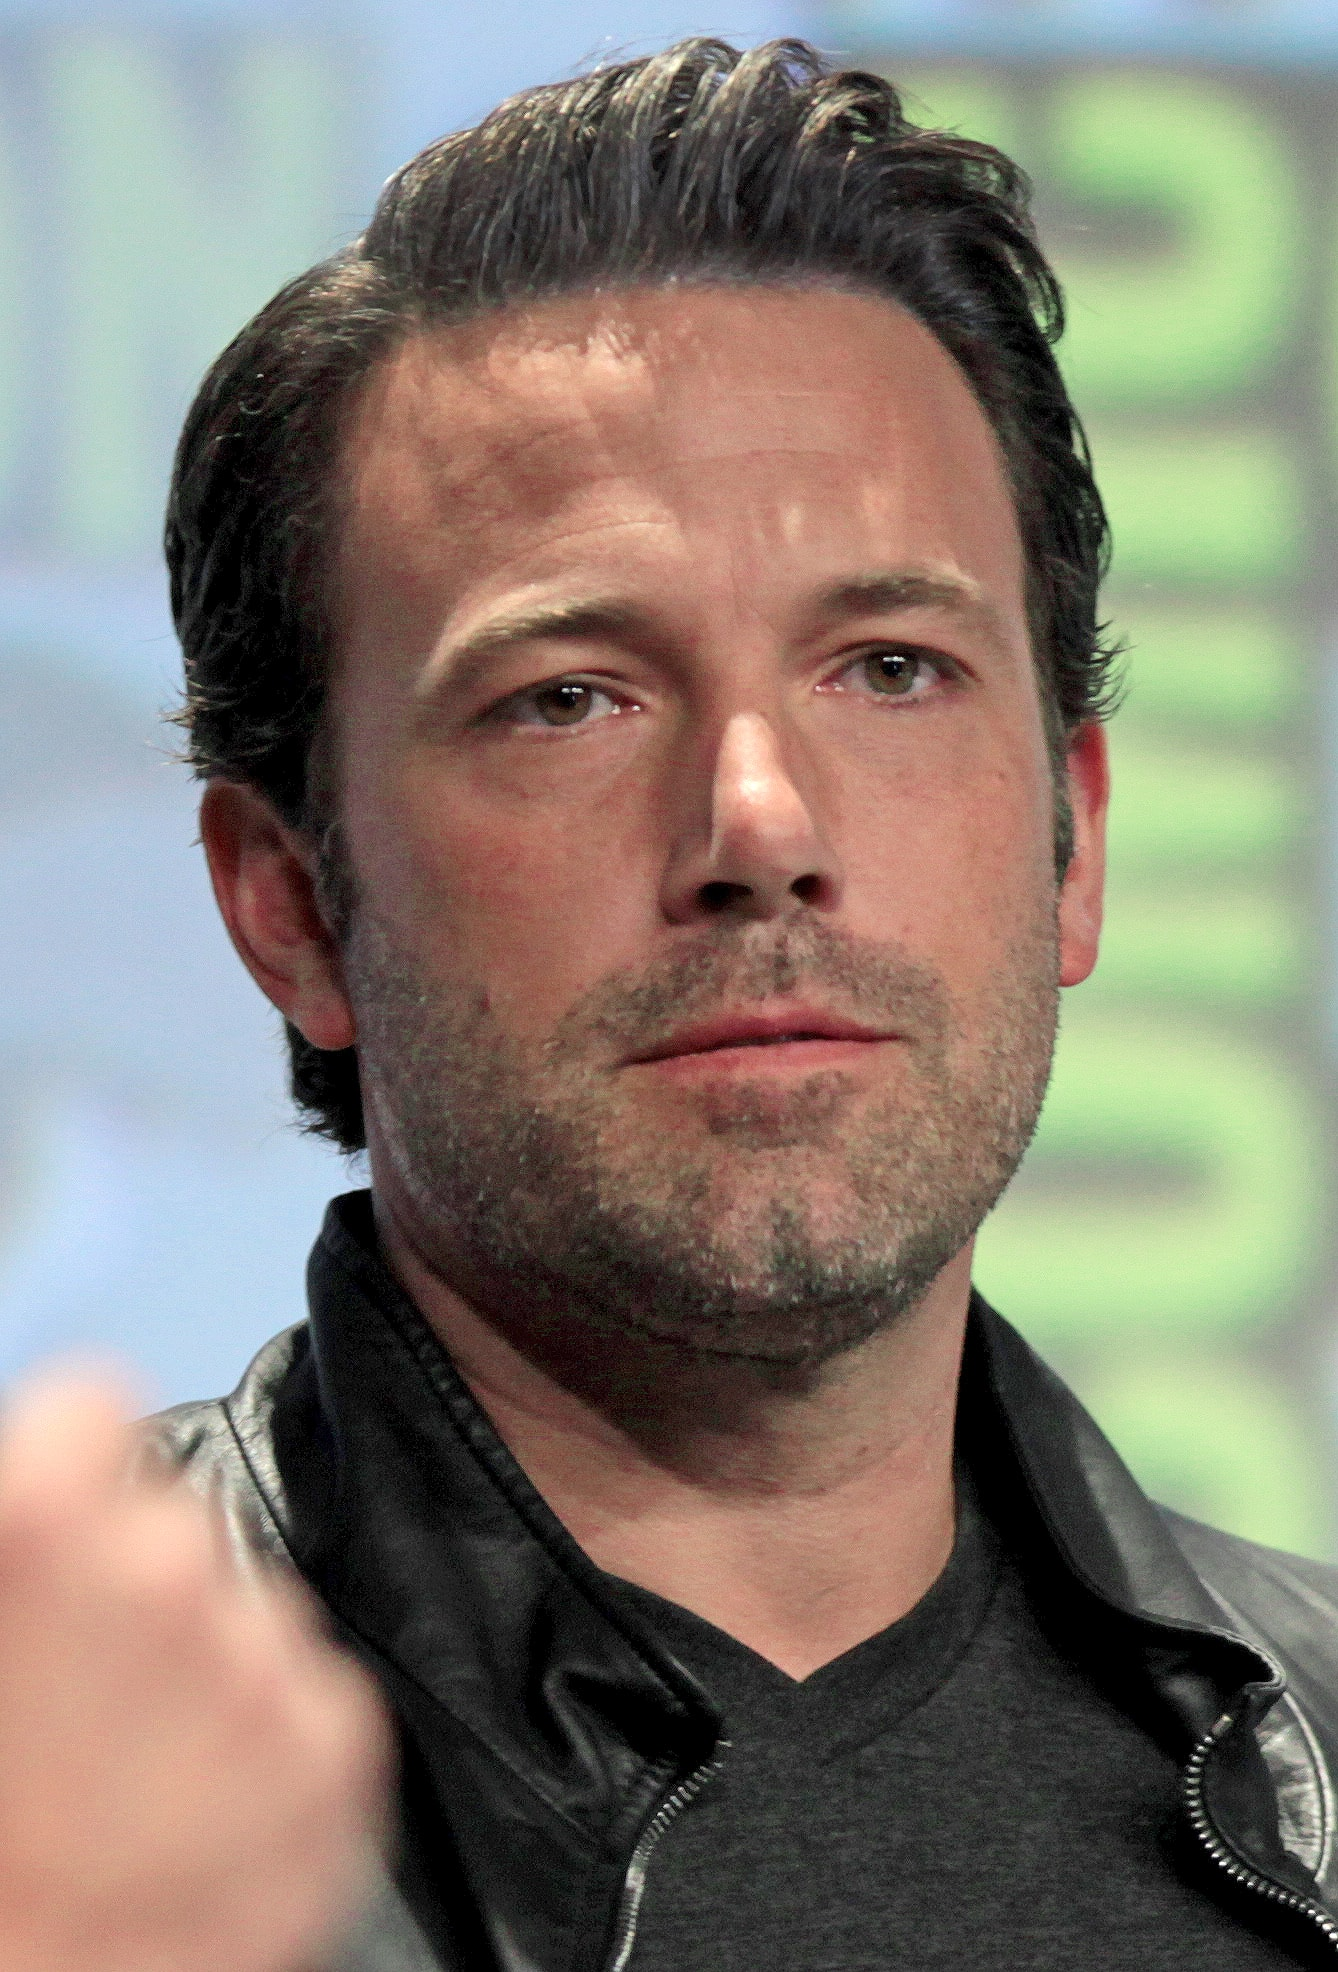 Ben Affleck Desktop wallpapers